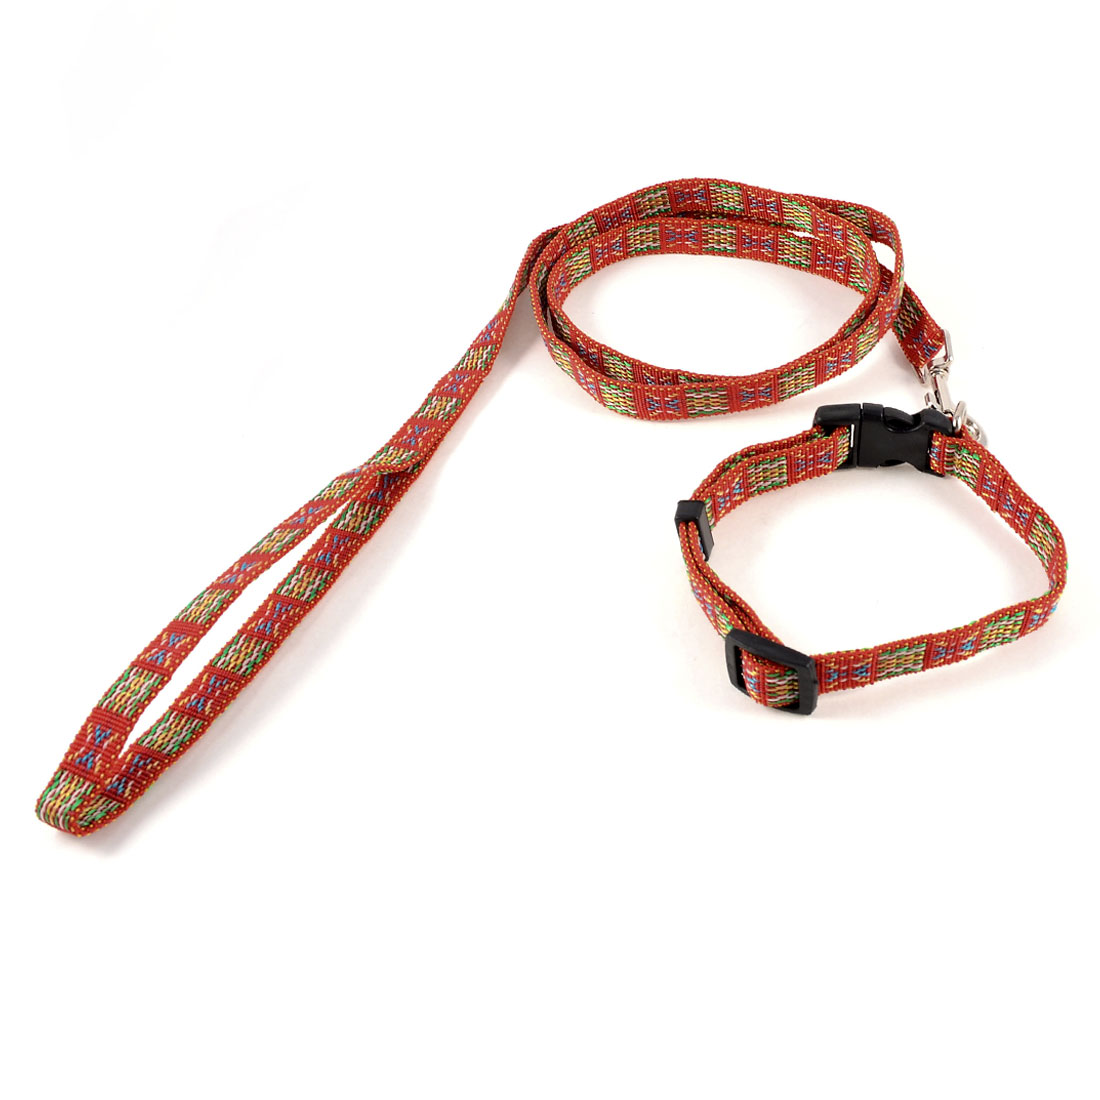 "Adjustable 0.6"" Width Strap Multicolored Dog Collar Halter Leash Lead"